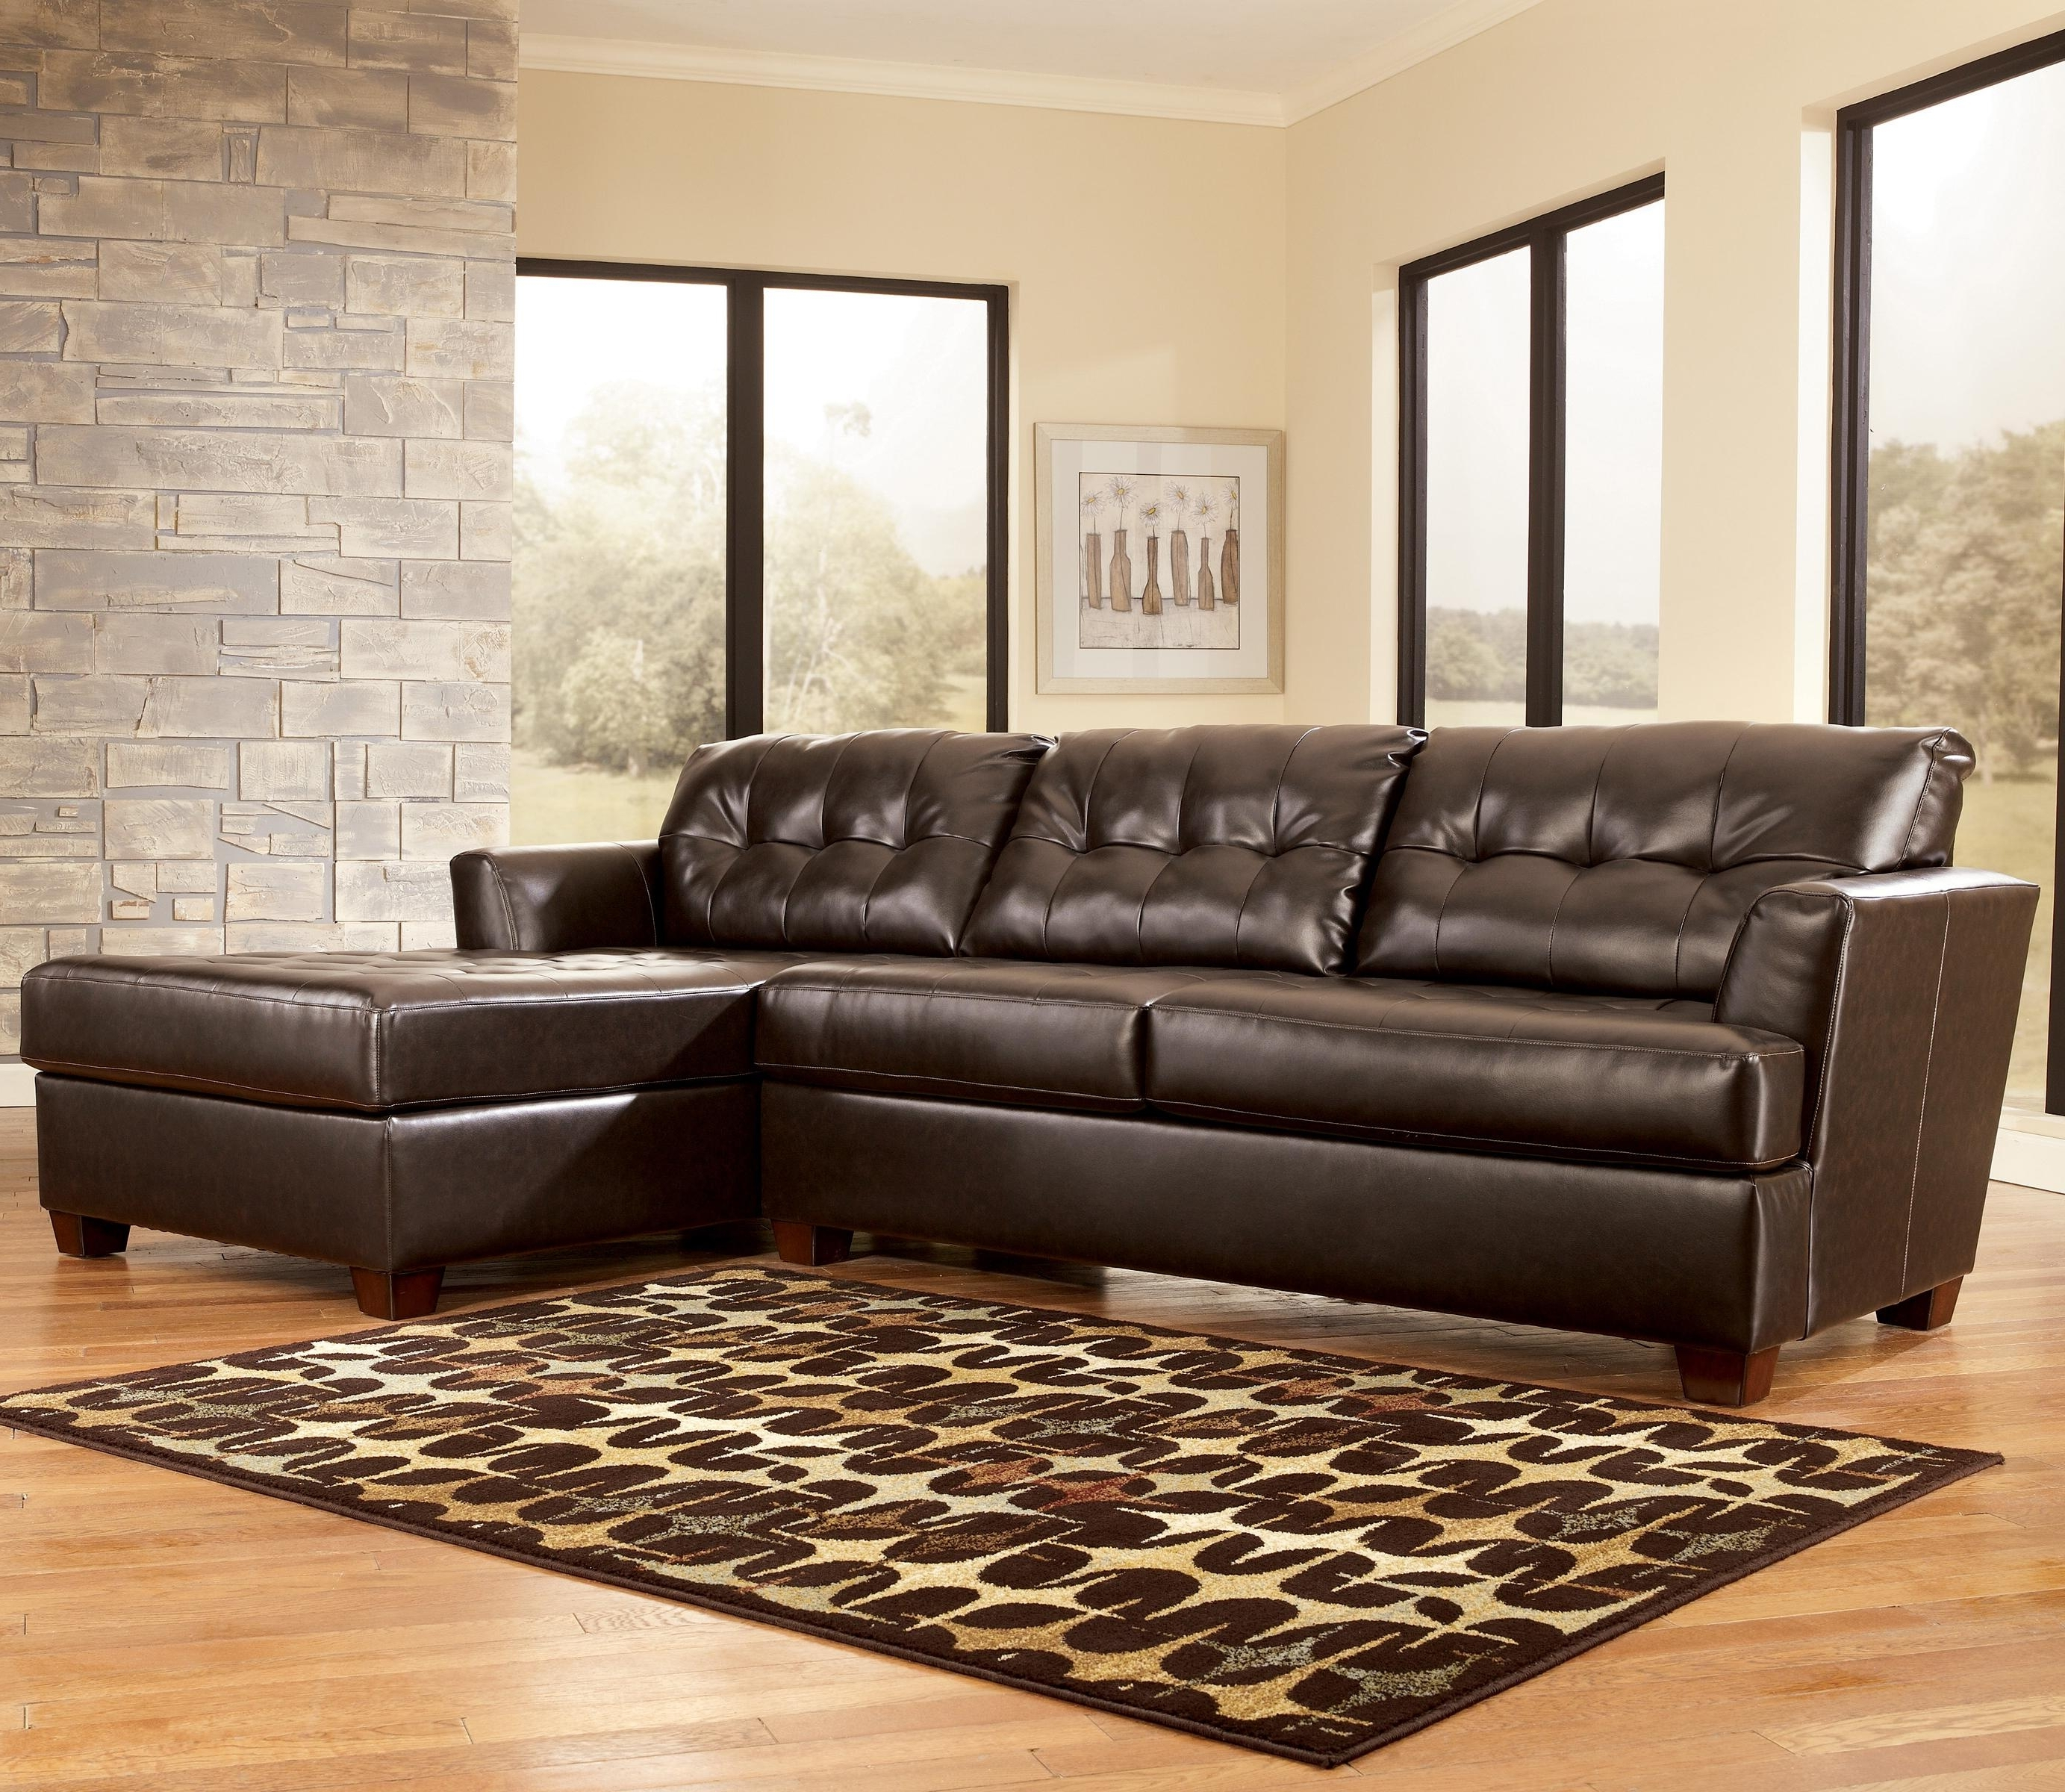 Trendy Dixon Durablend – Chocolate Sectional Sofasignature Design Inside Home Furniture Sectional Sofas (View 20 of 20)